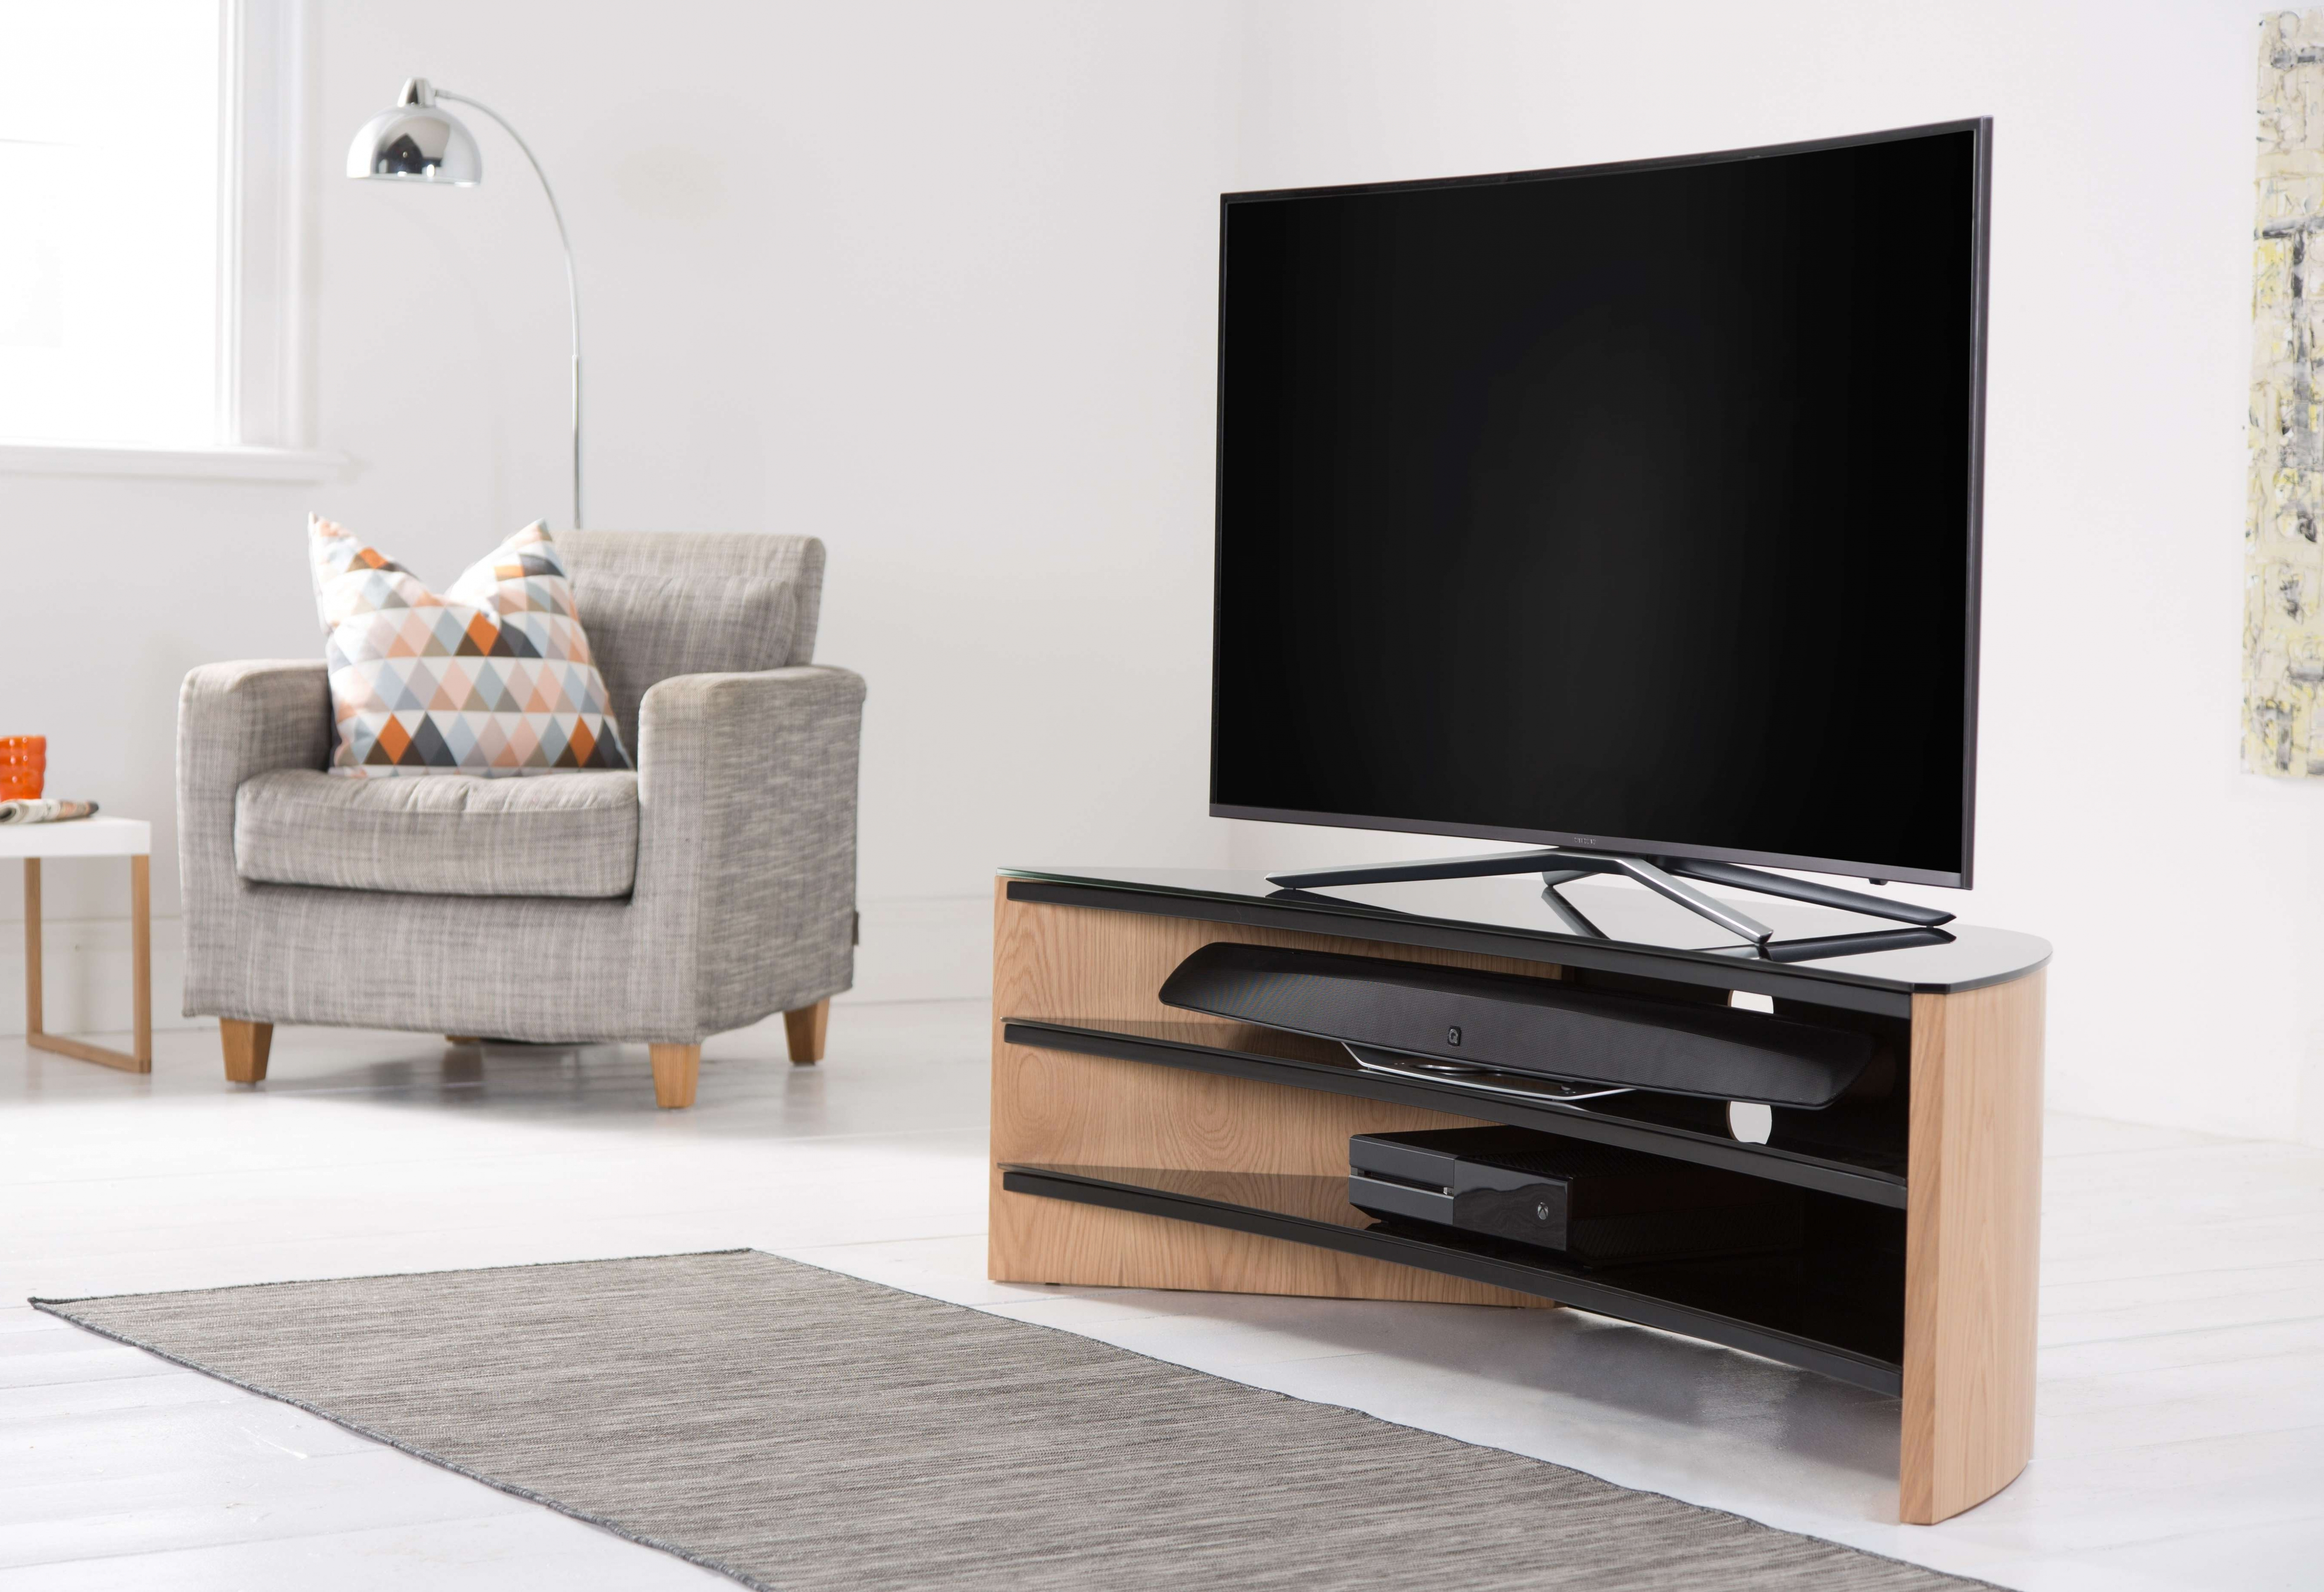 2017 Tv Stands Rounded Corners Intended For Tv Stand Rounded Corners – Round Designs (View 20 of 20)